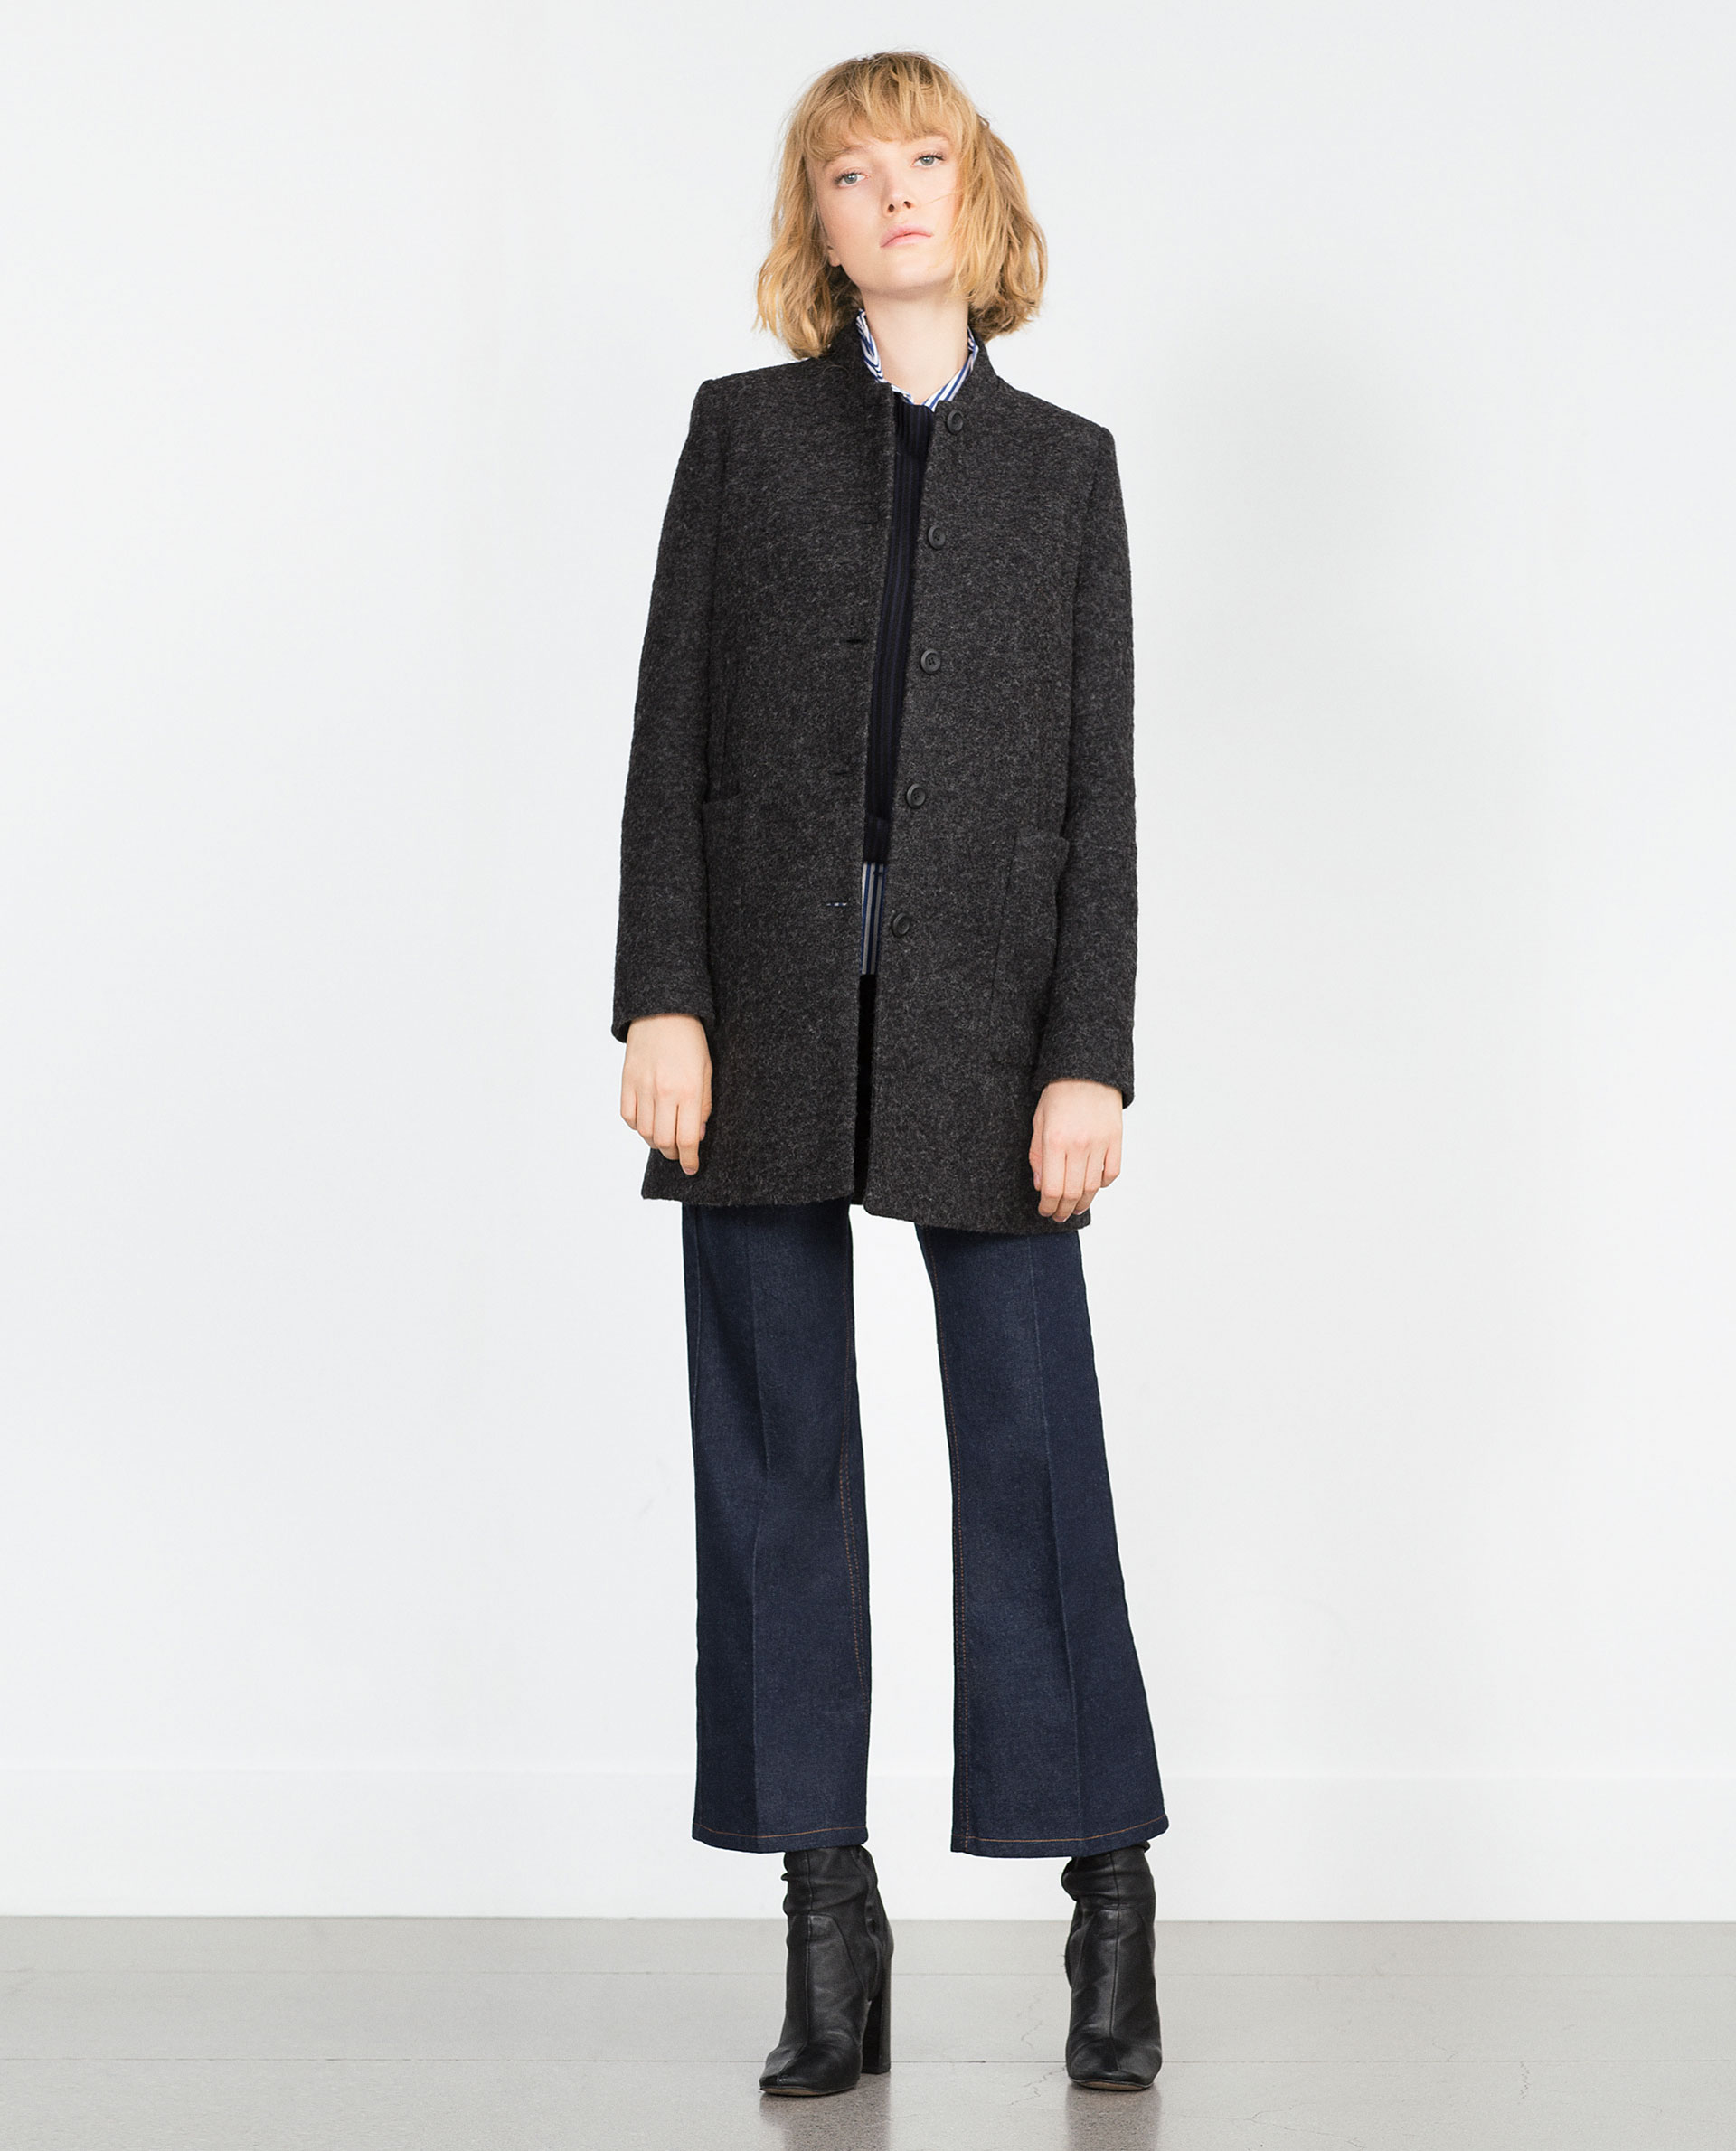 WOOL COAT - Outerwear - Woman - COLLECTION SS16 | ZARA United States